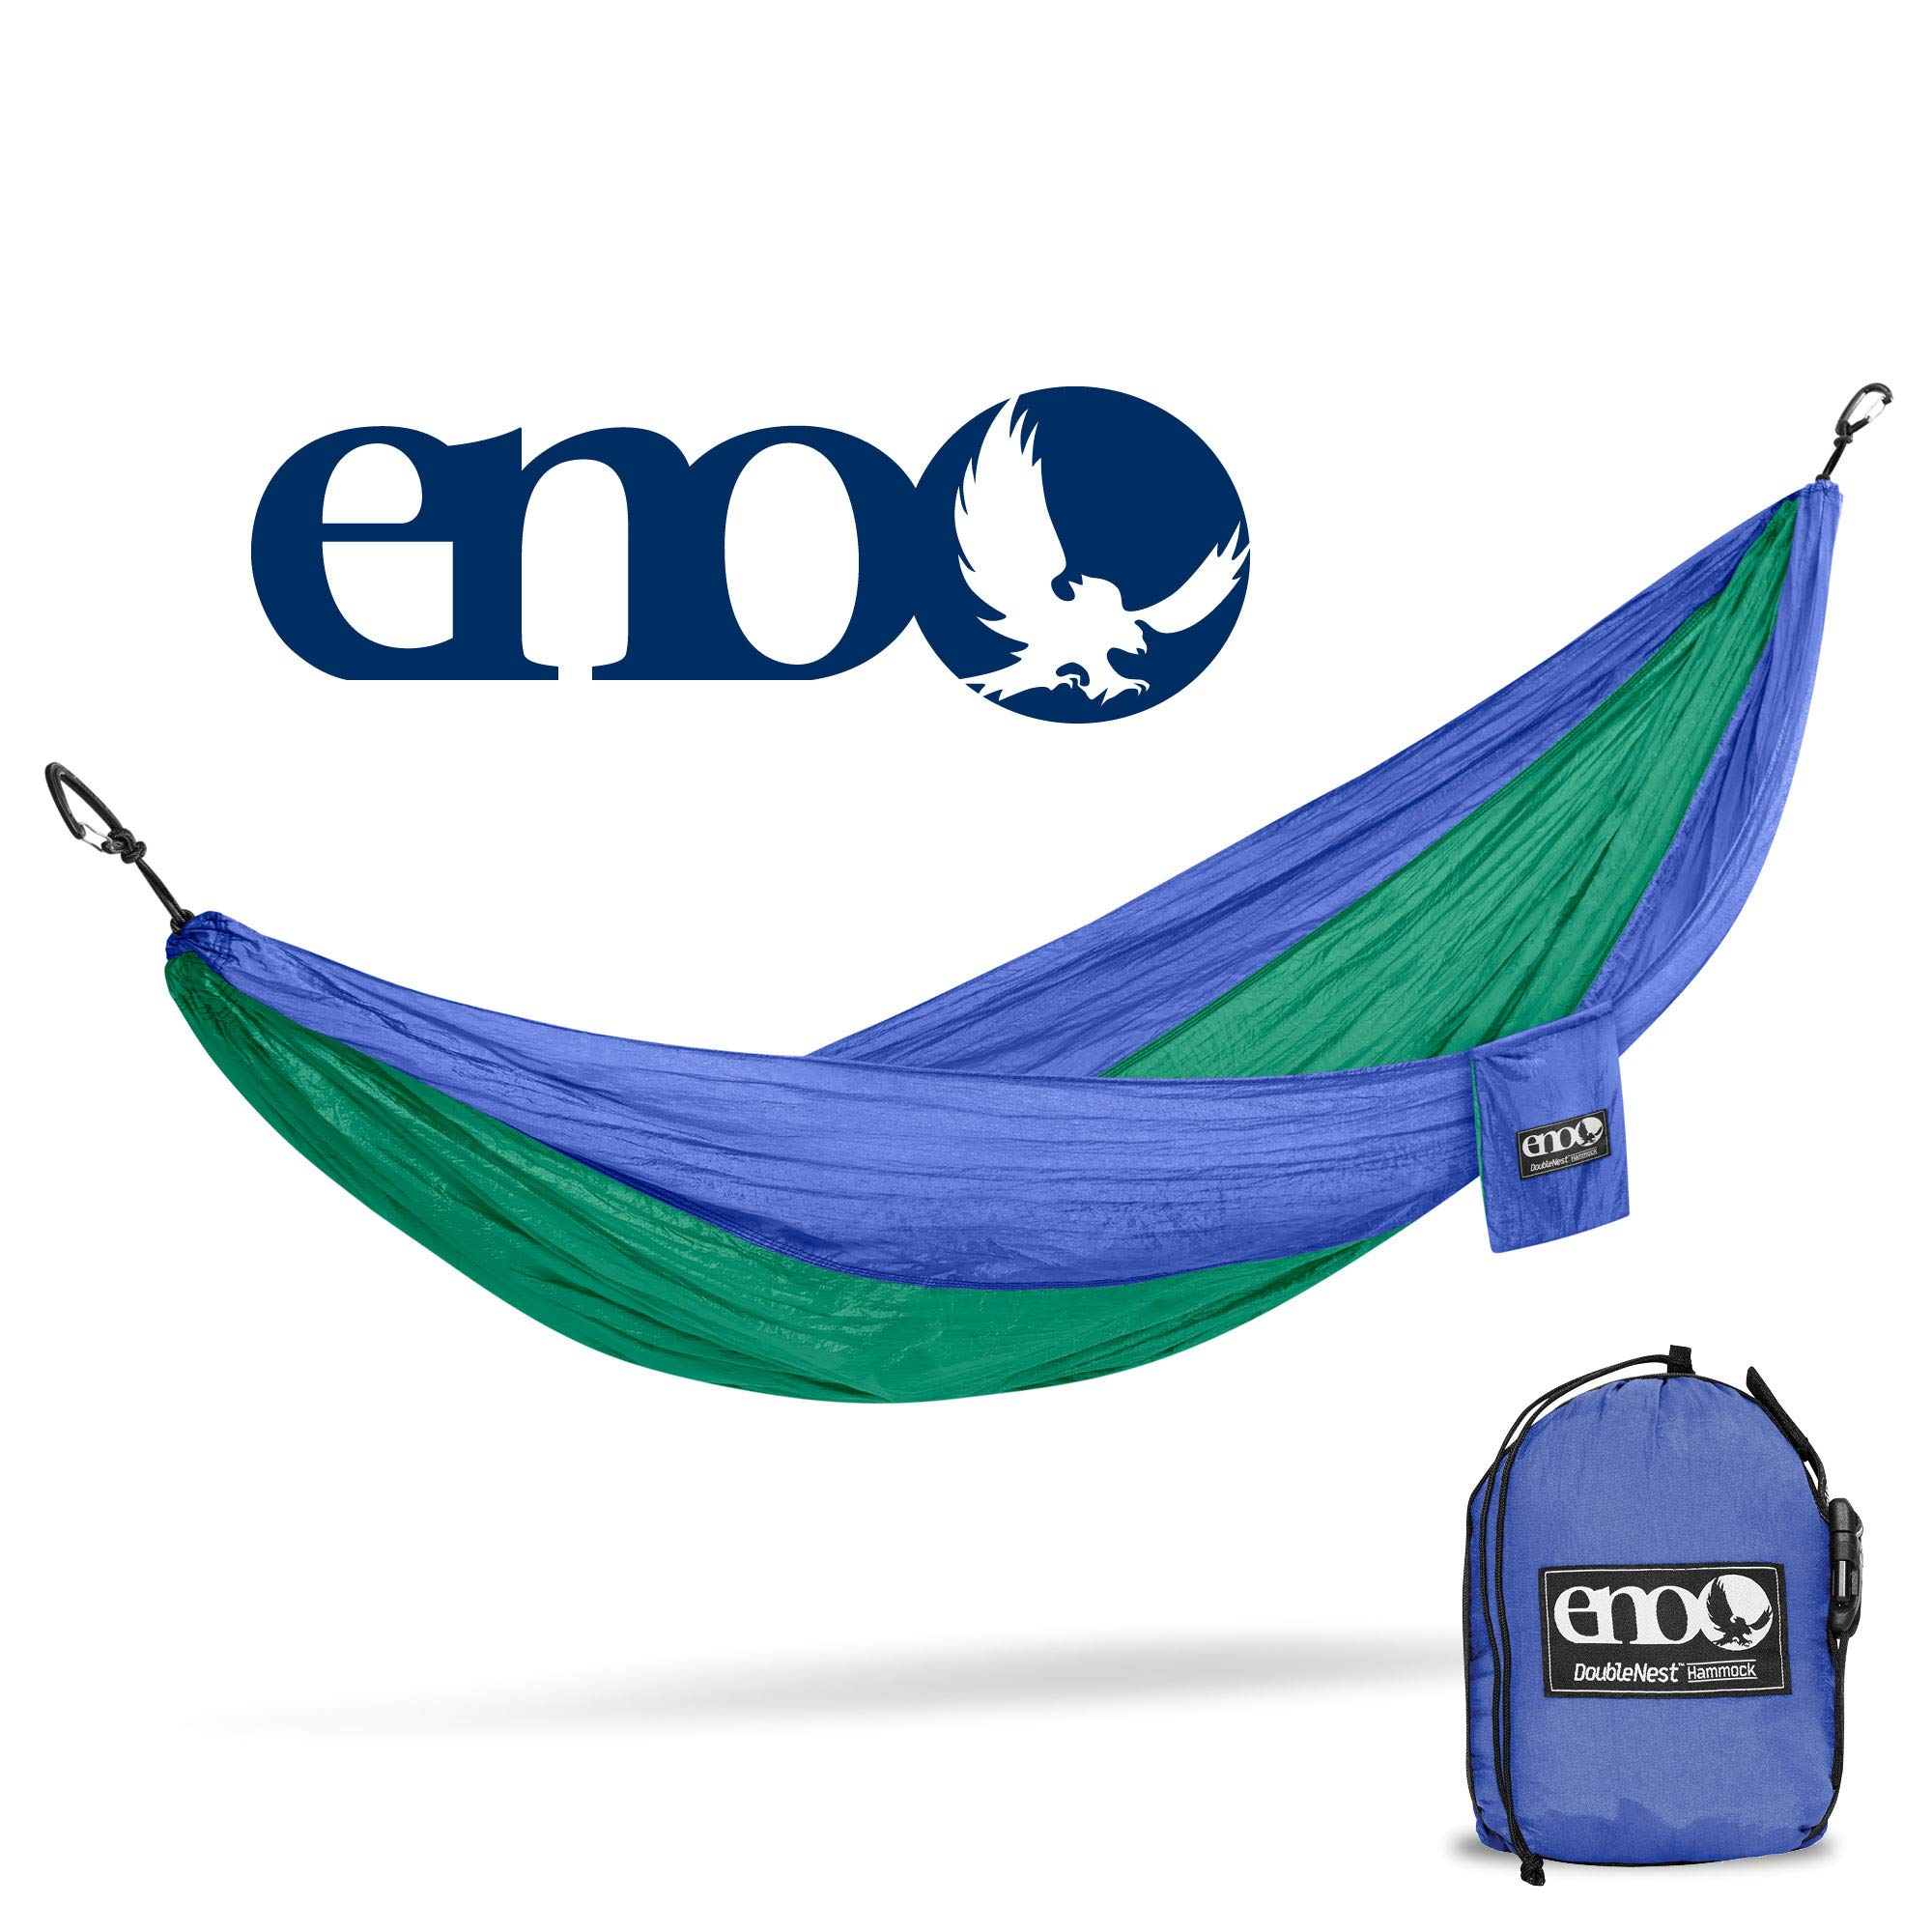 Eagles Nest Outfitters ENO DoubleNest Hammock, Portable Hammock for Two, Royal/Emerald (FFP)